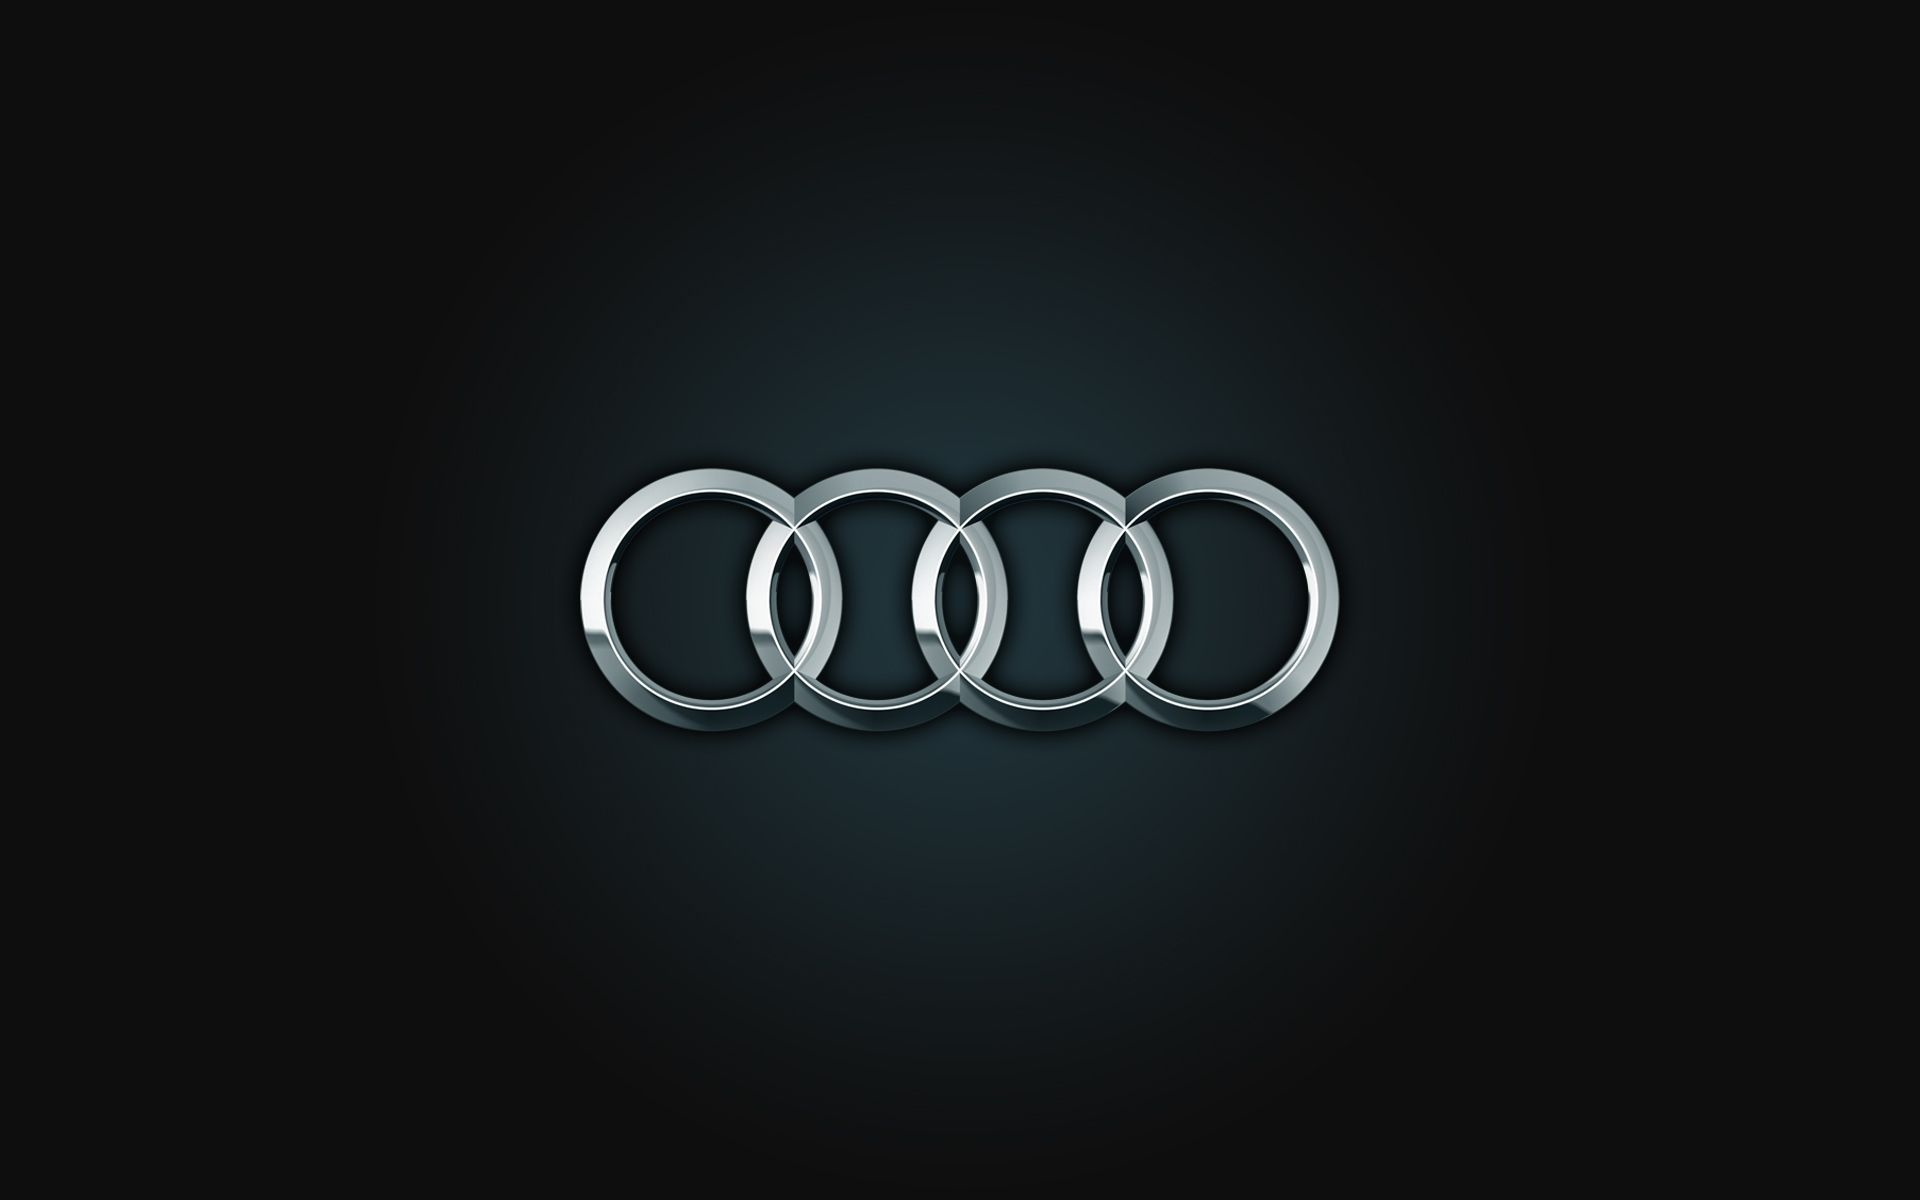 audi logo wallpapers pictures images hd wallpapers pinterest